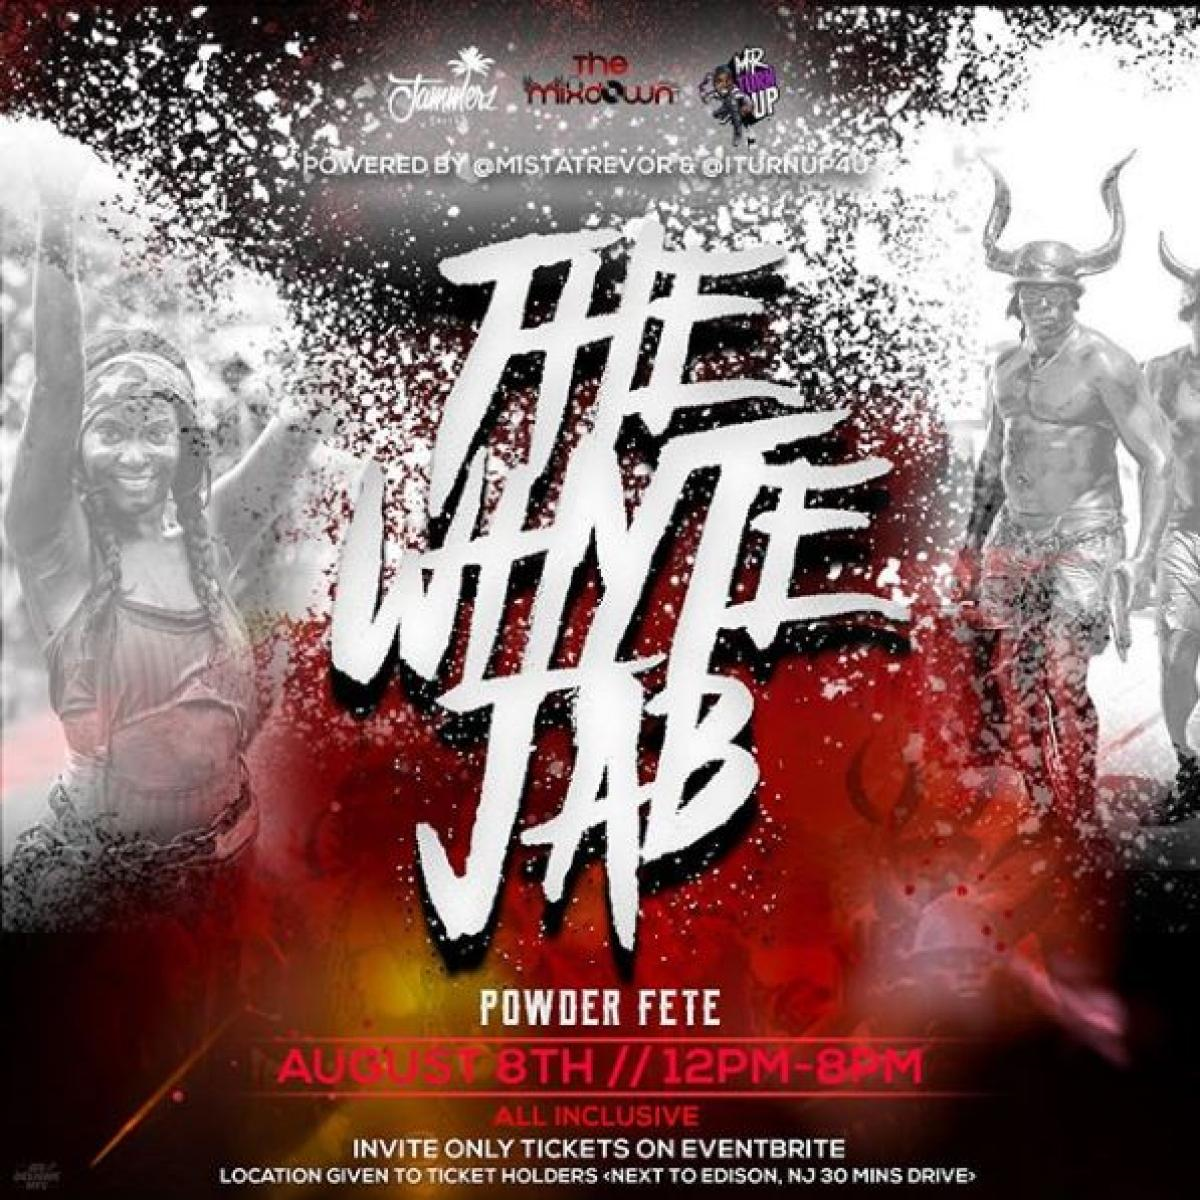 The Whyte Jab flyer or graphic.